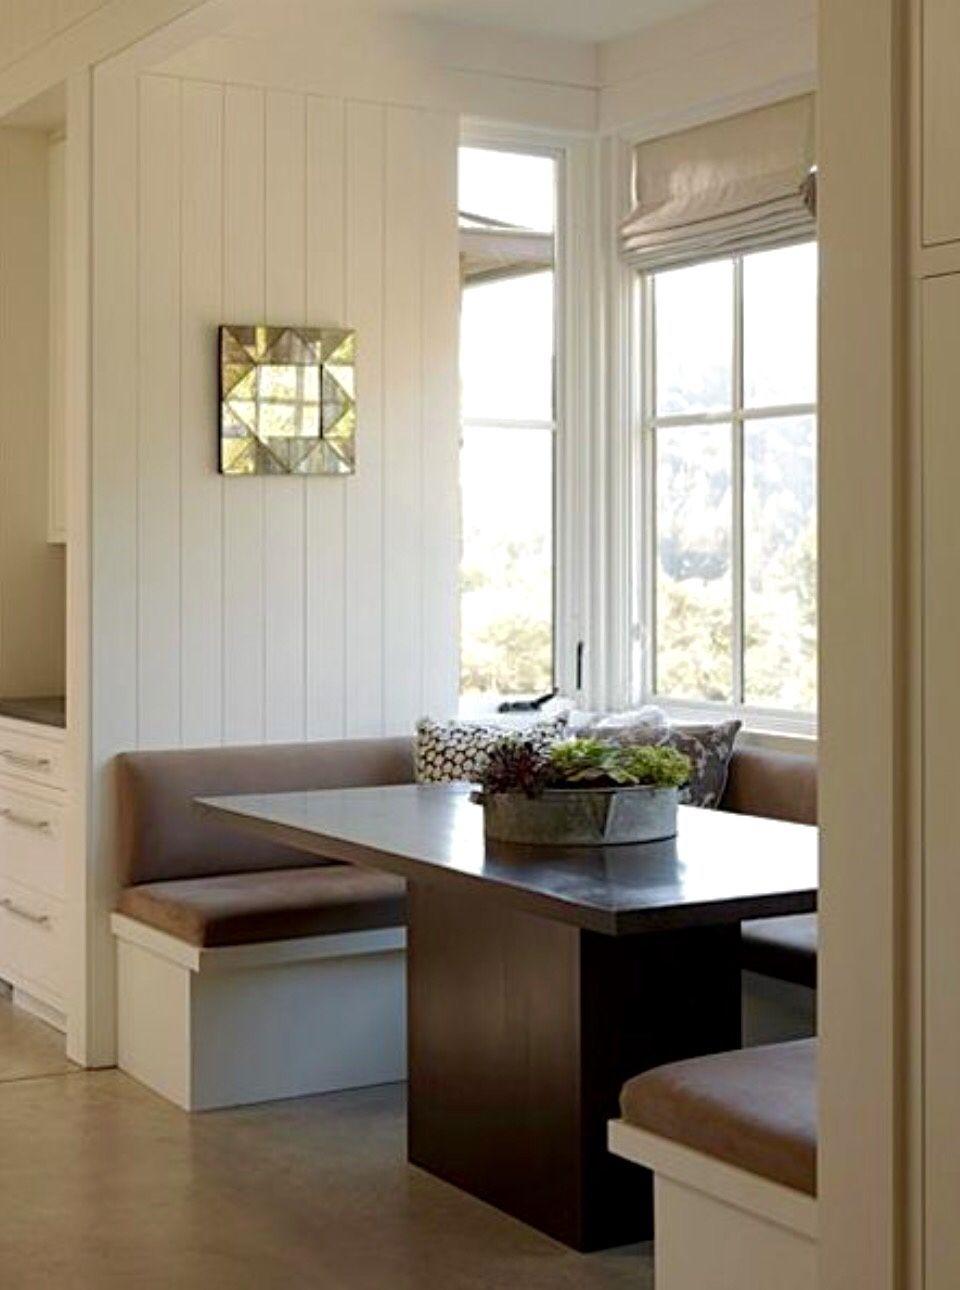 Pin by Anne Matu on House ideas | Pinterest | Kitchens, Cabin and ...